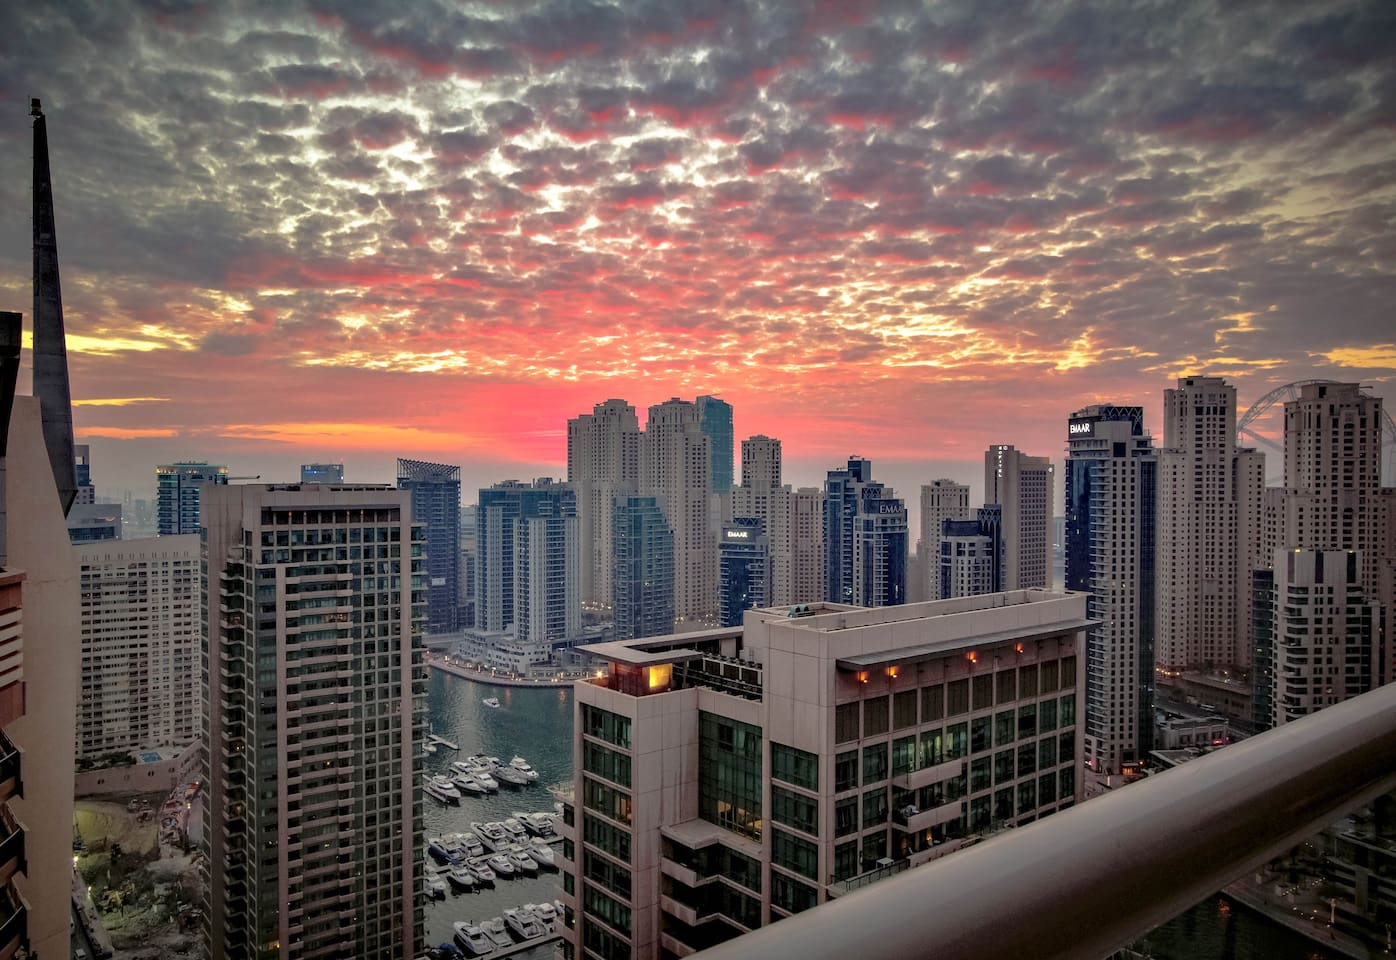 Extraordinary 30th fl. balcony view of the sunset overlooking Dubai Marina - with a glimpse of Ain Dubai (Dubai Eye) which is scheduled to open later in 2018.